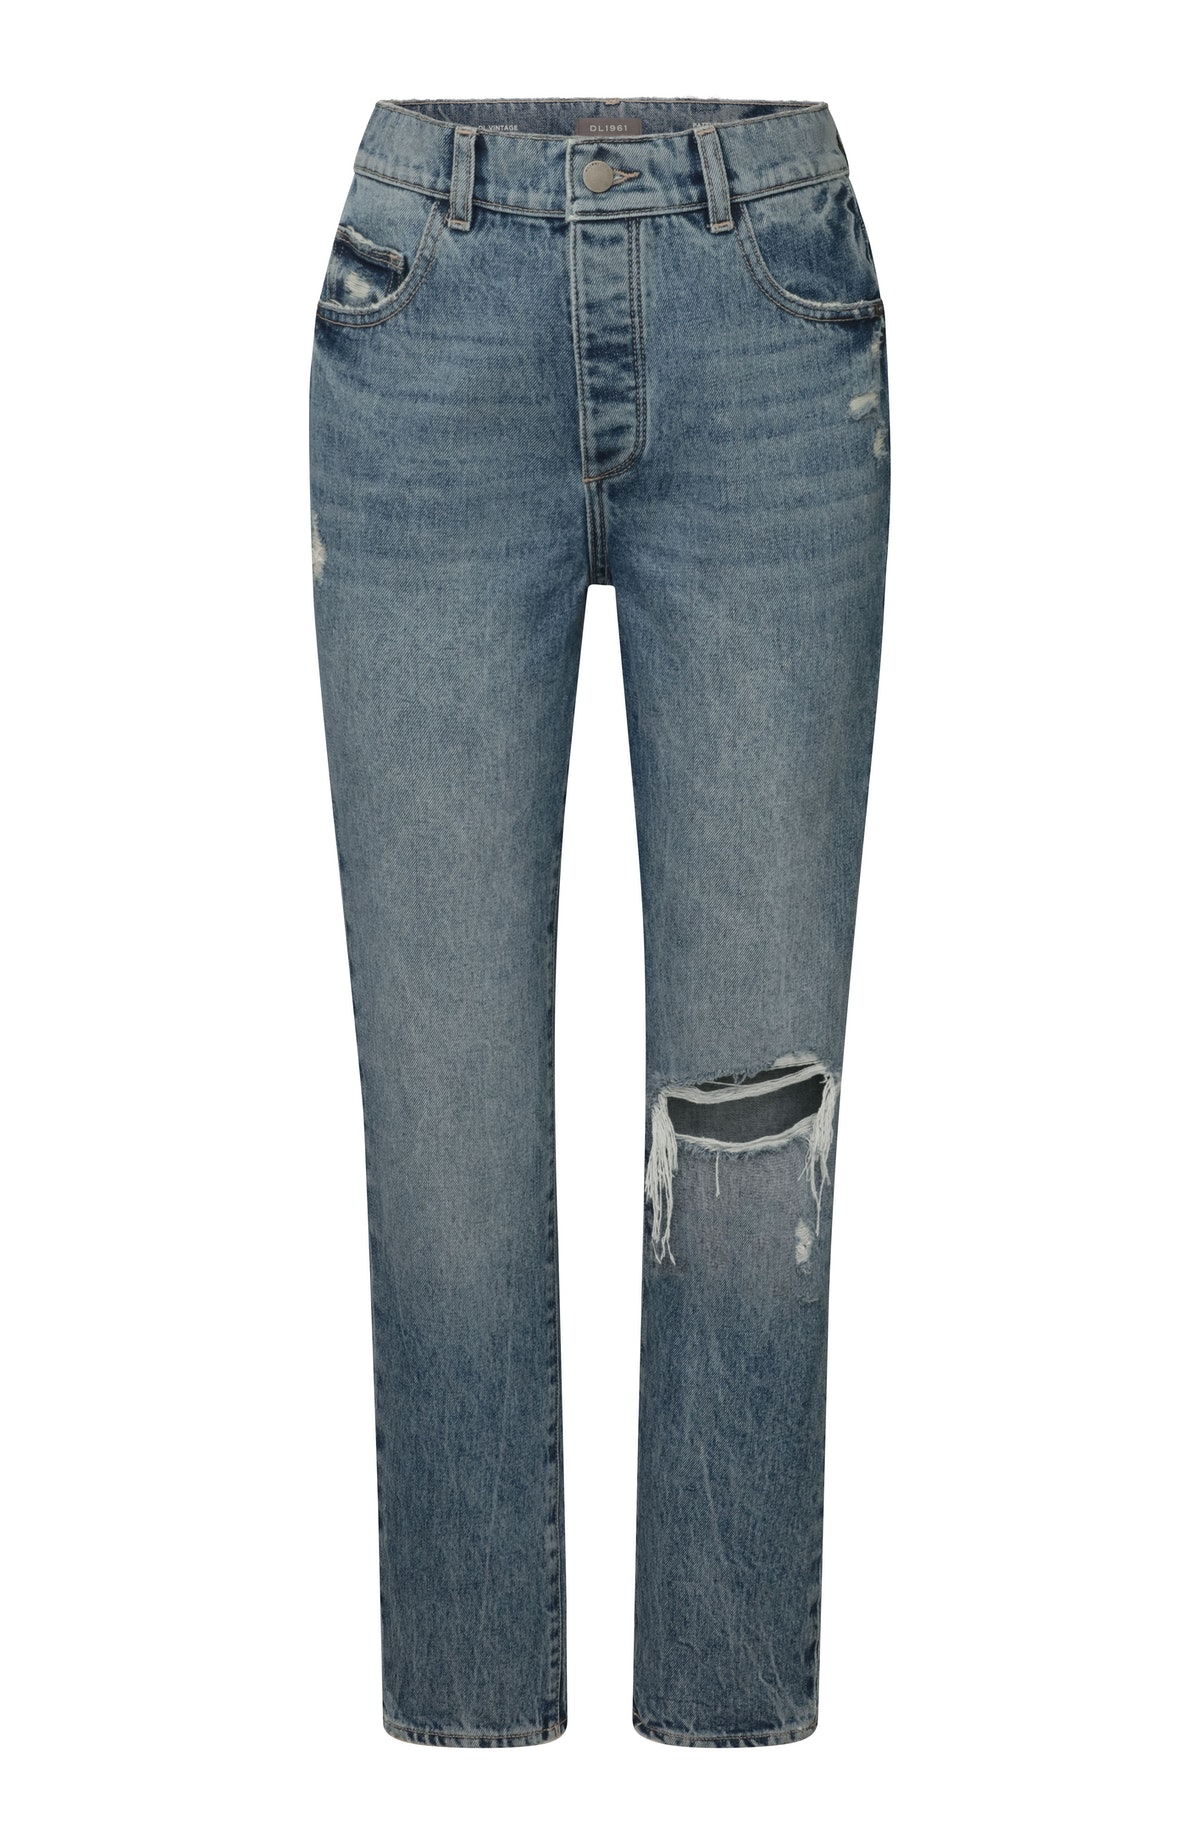 DL1961 Emilie Straight Ultra High Rise Vintage Ankle Jean, worn by Irina Shayk in the brand's Fall/W...